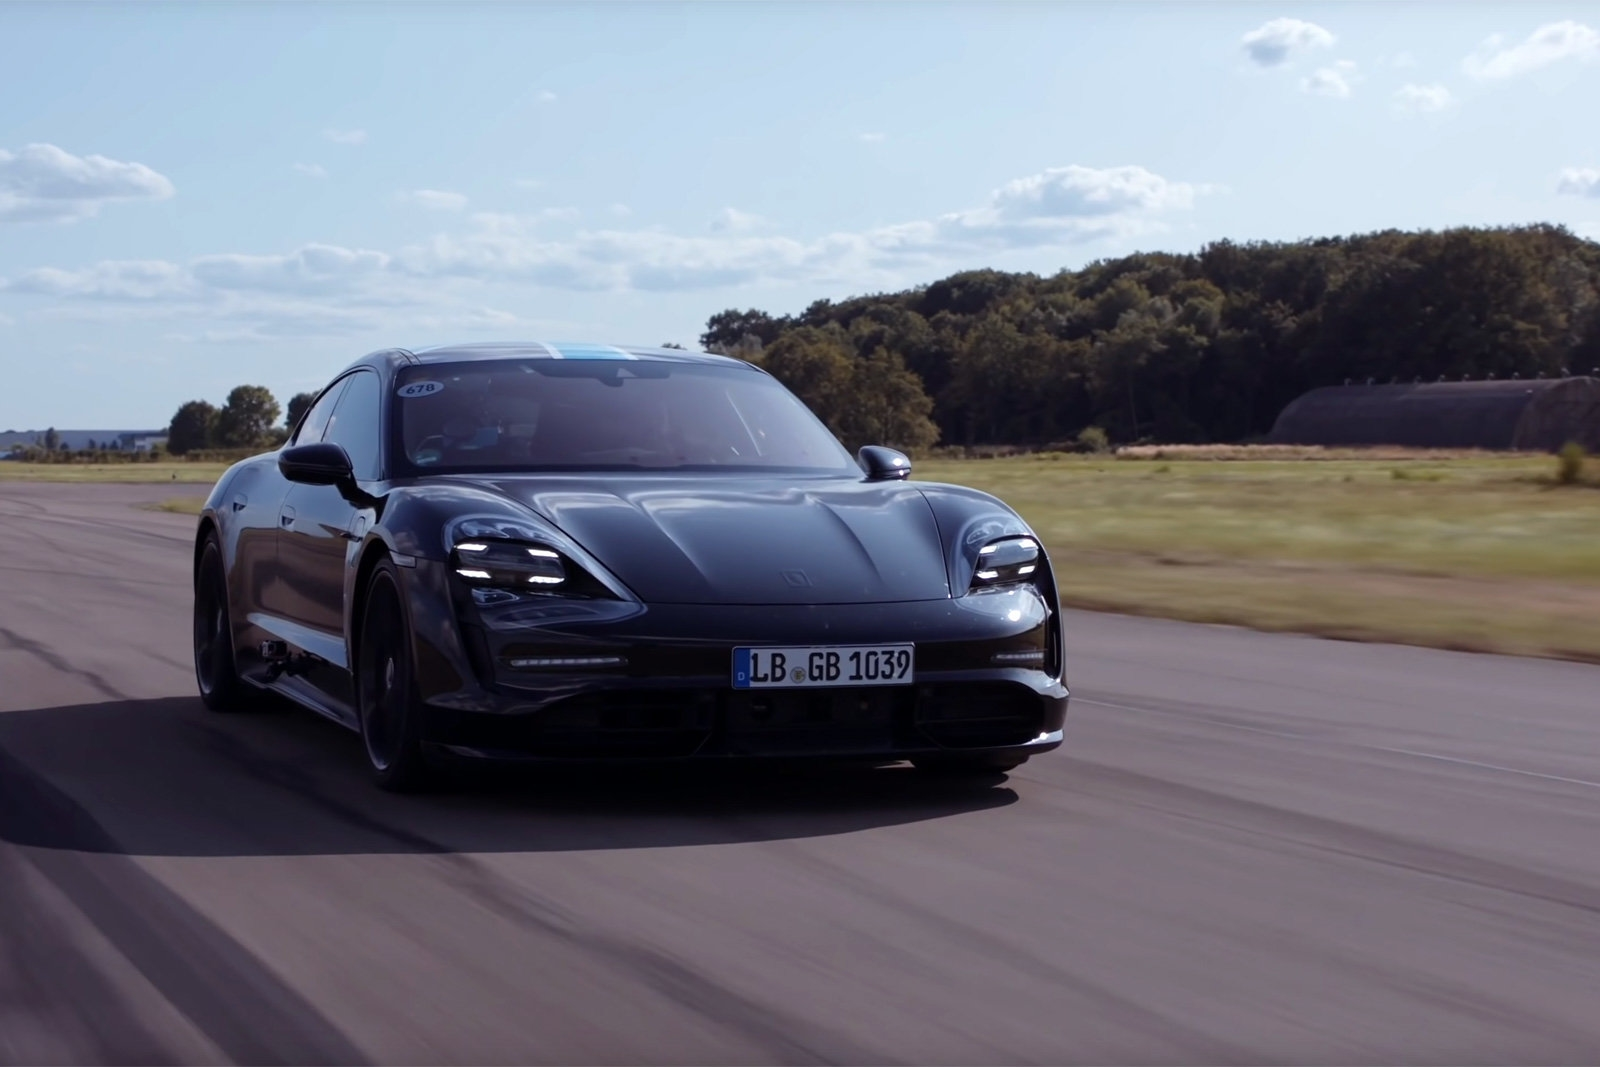 Porsche Taycan test drive shows the EV's repeatable launch control | DeviceDaily.com